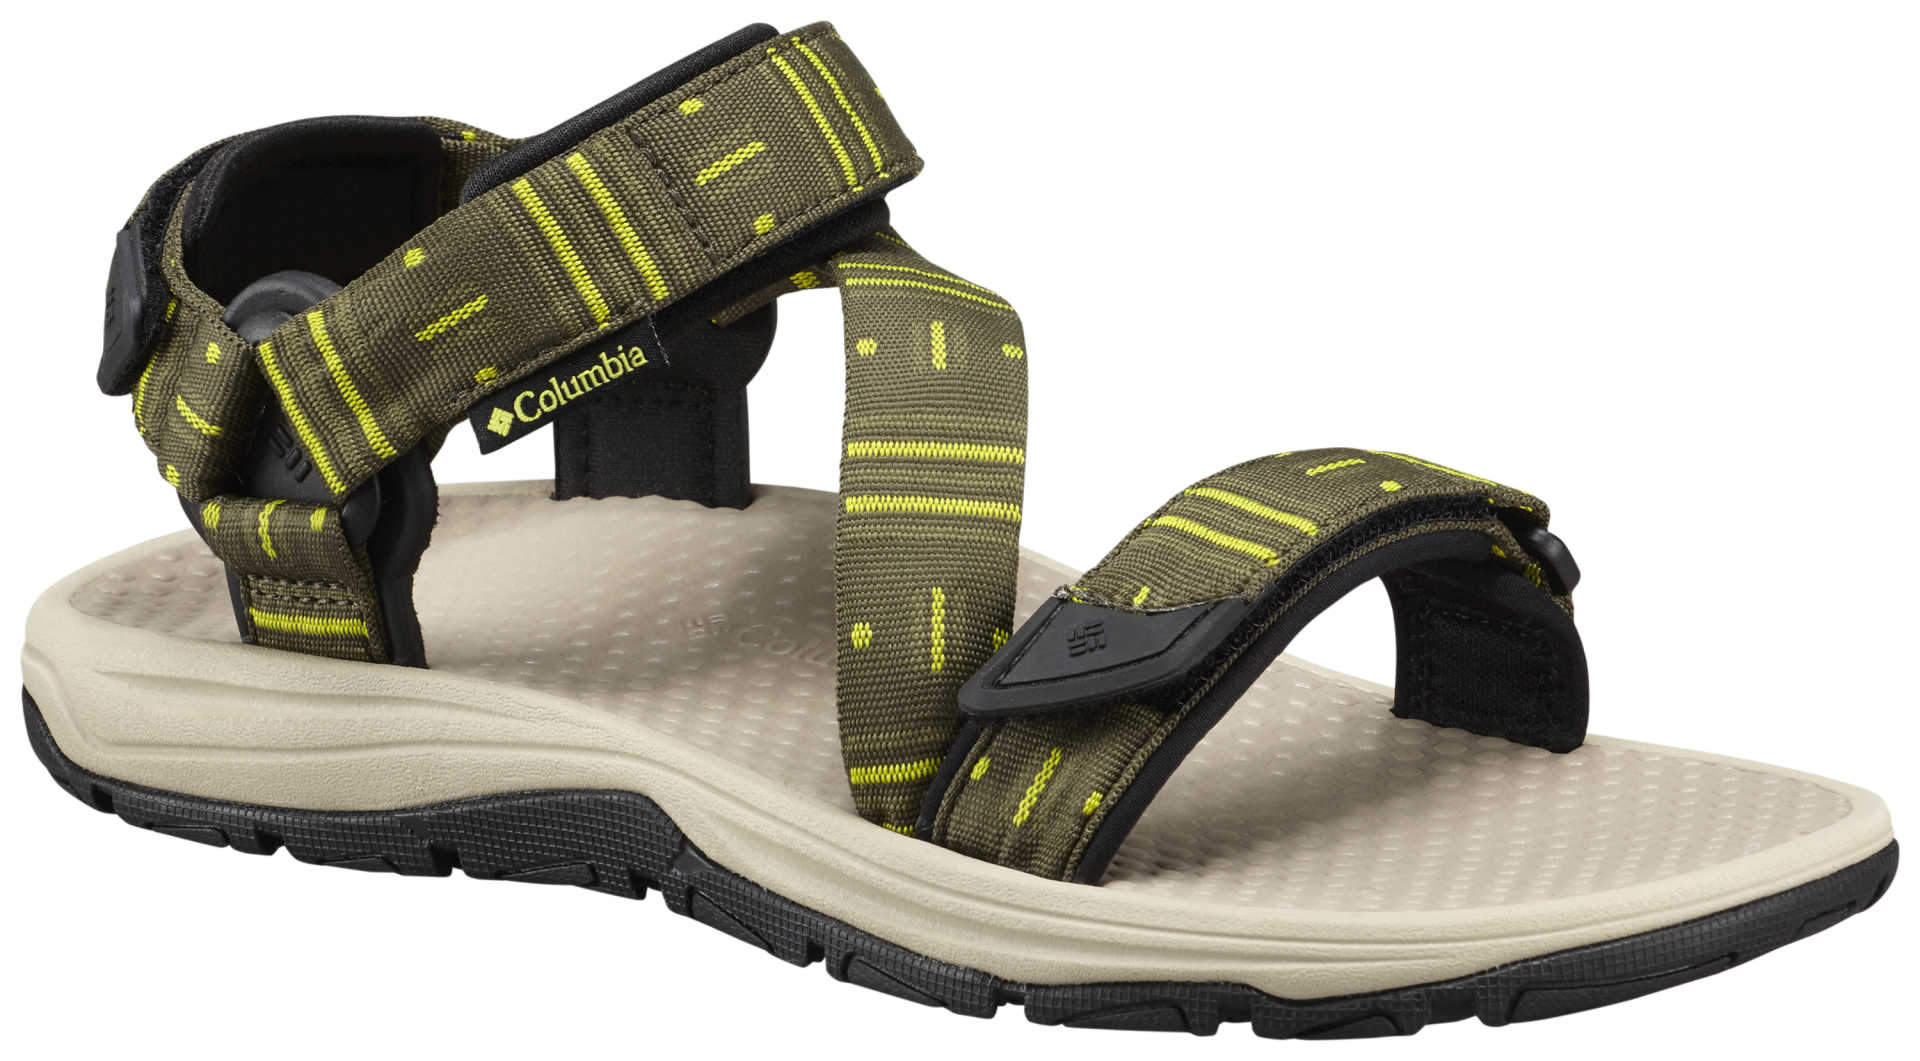 42584a51634 Men s Columbia BIG WATER Sandal-Peatmoss Zour - Sklep internetowy ...